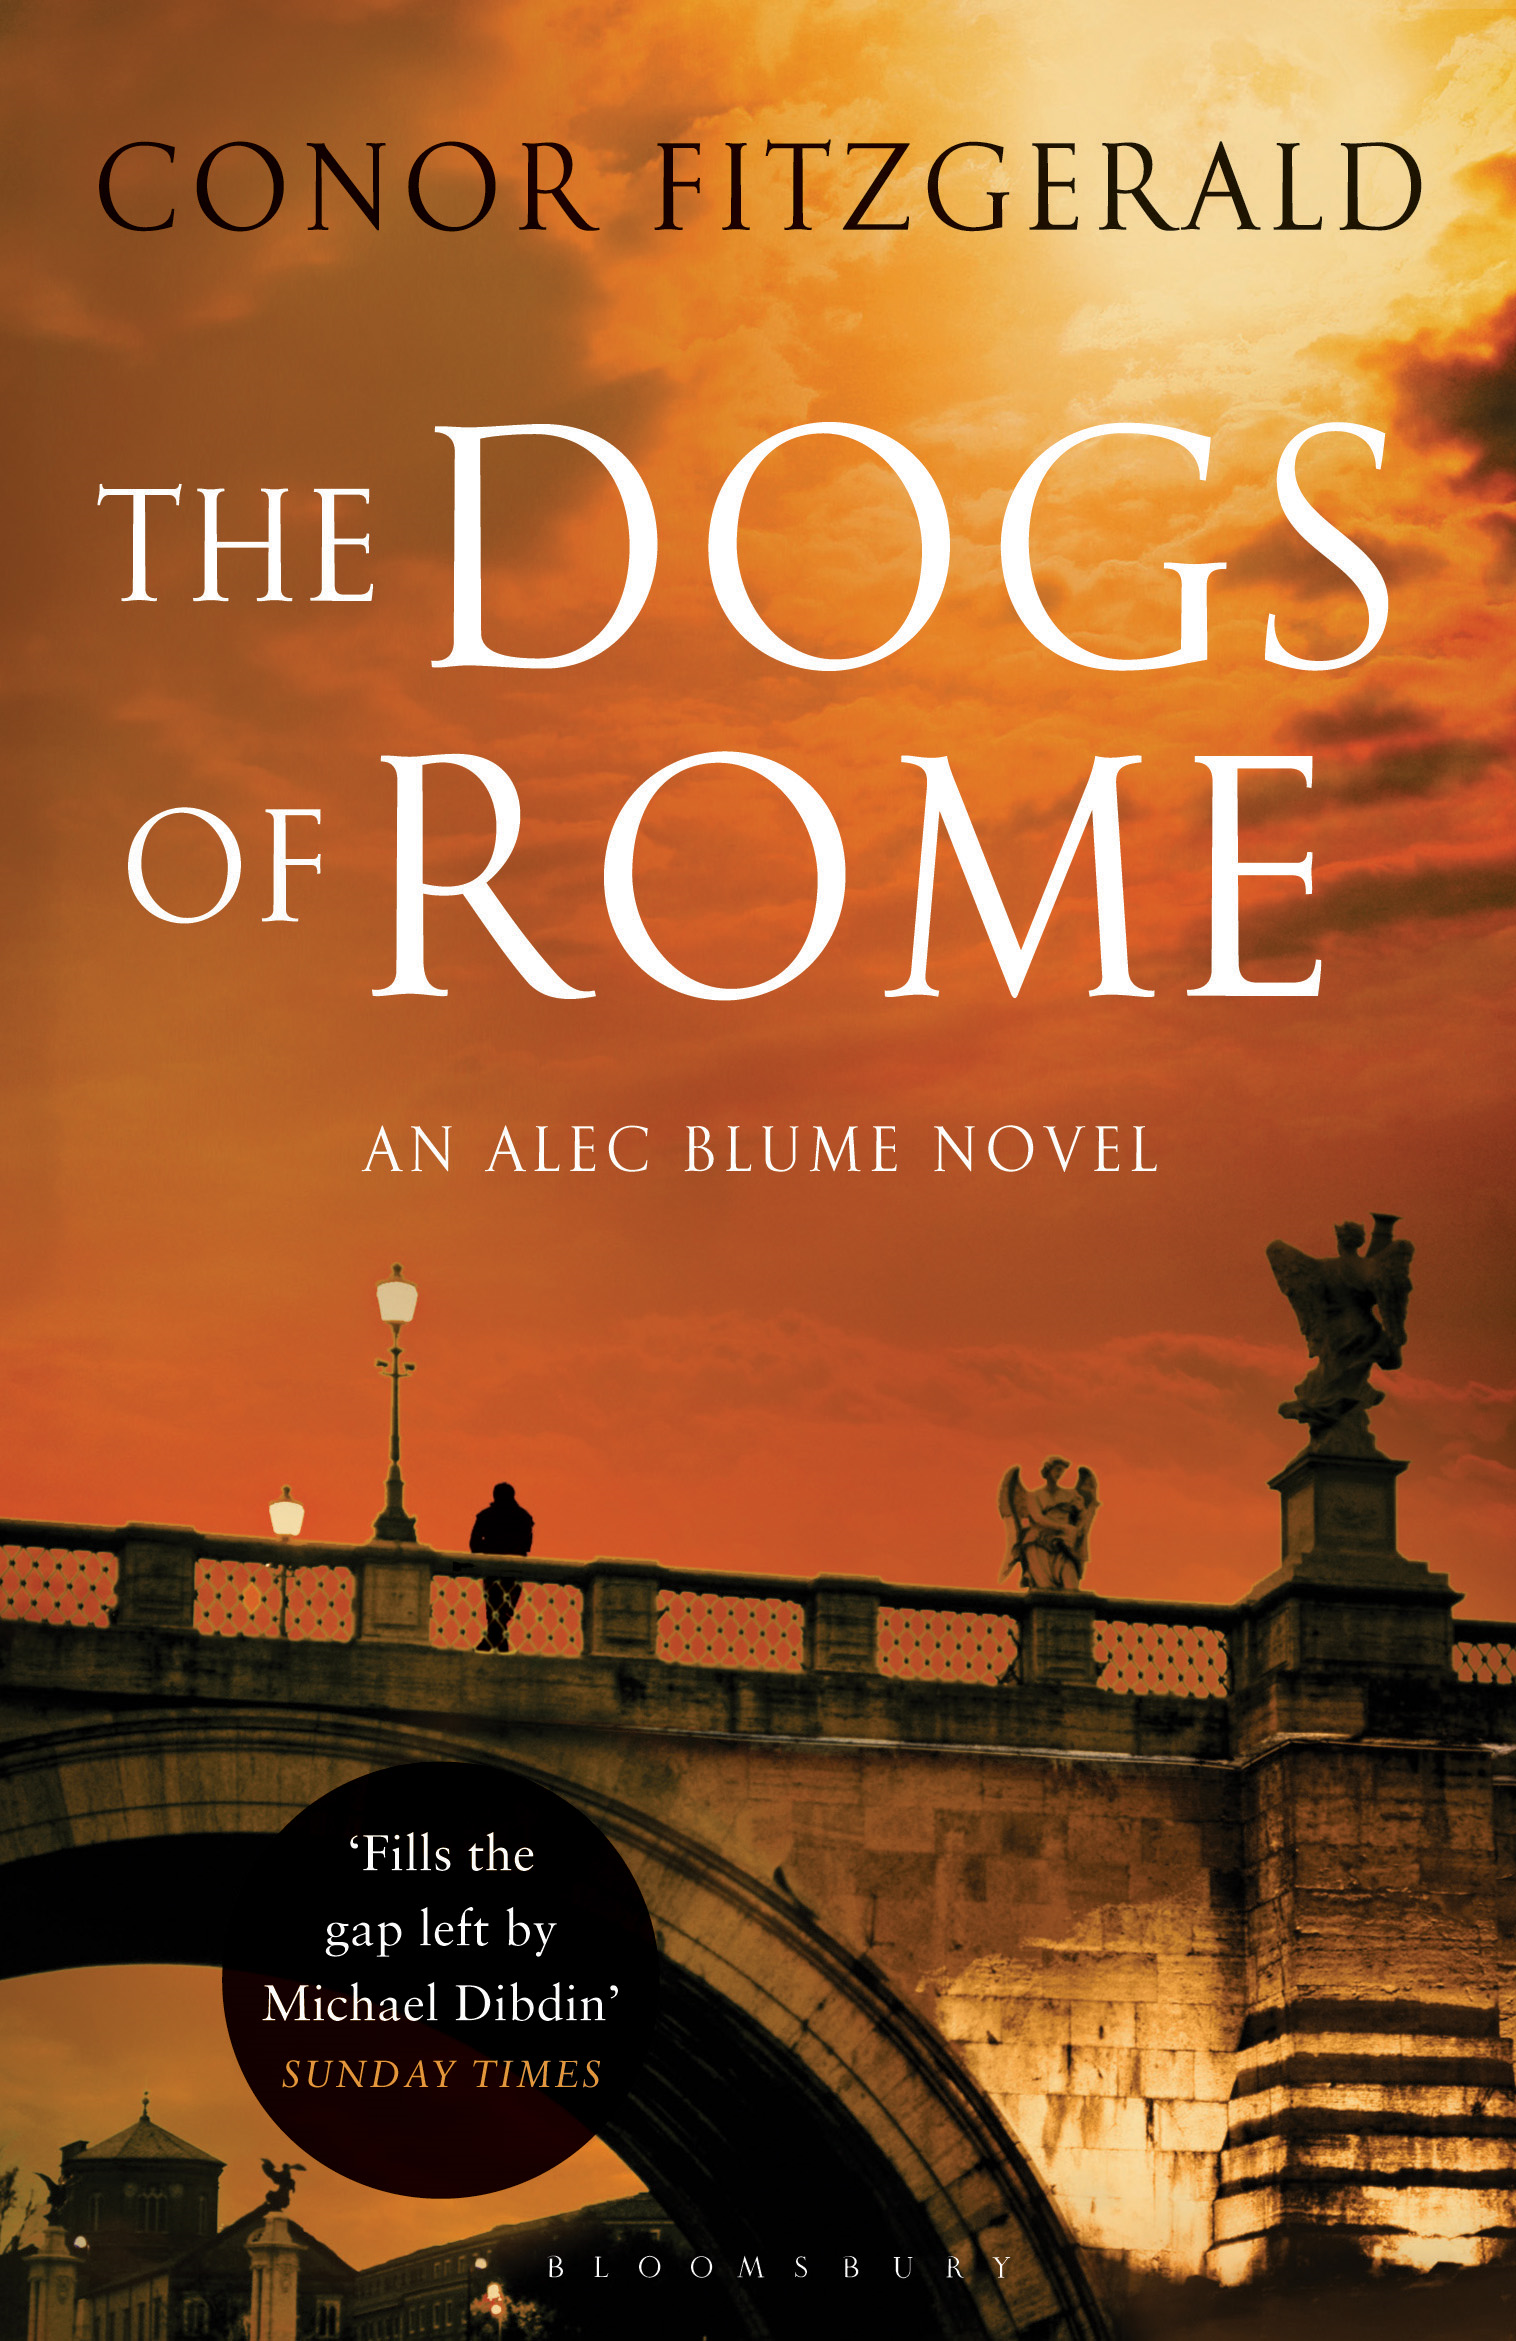 The Dogs of Rome: An Alec Blume Novel By: Conor Fitzgerald